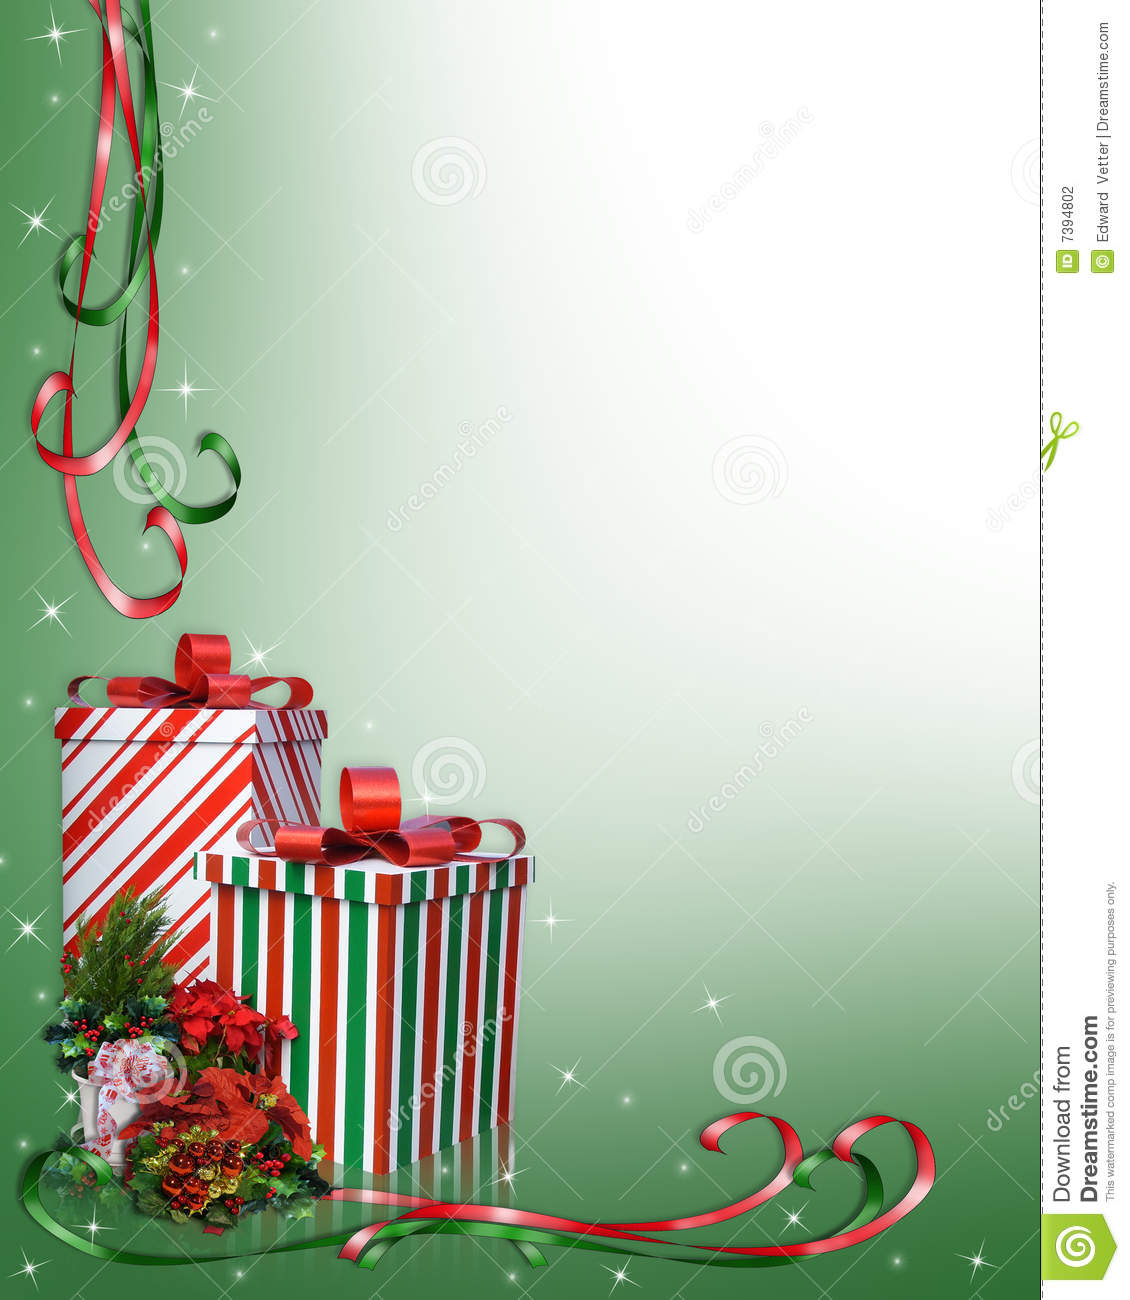 1130x1300 Holley Clipart Christmas Presents Border